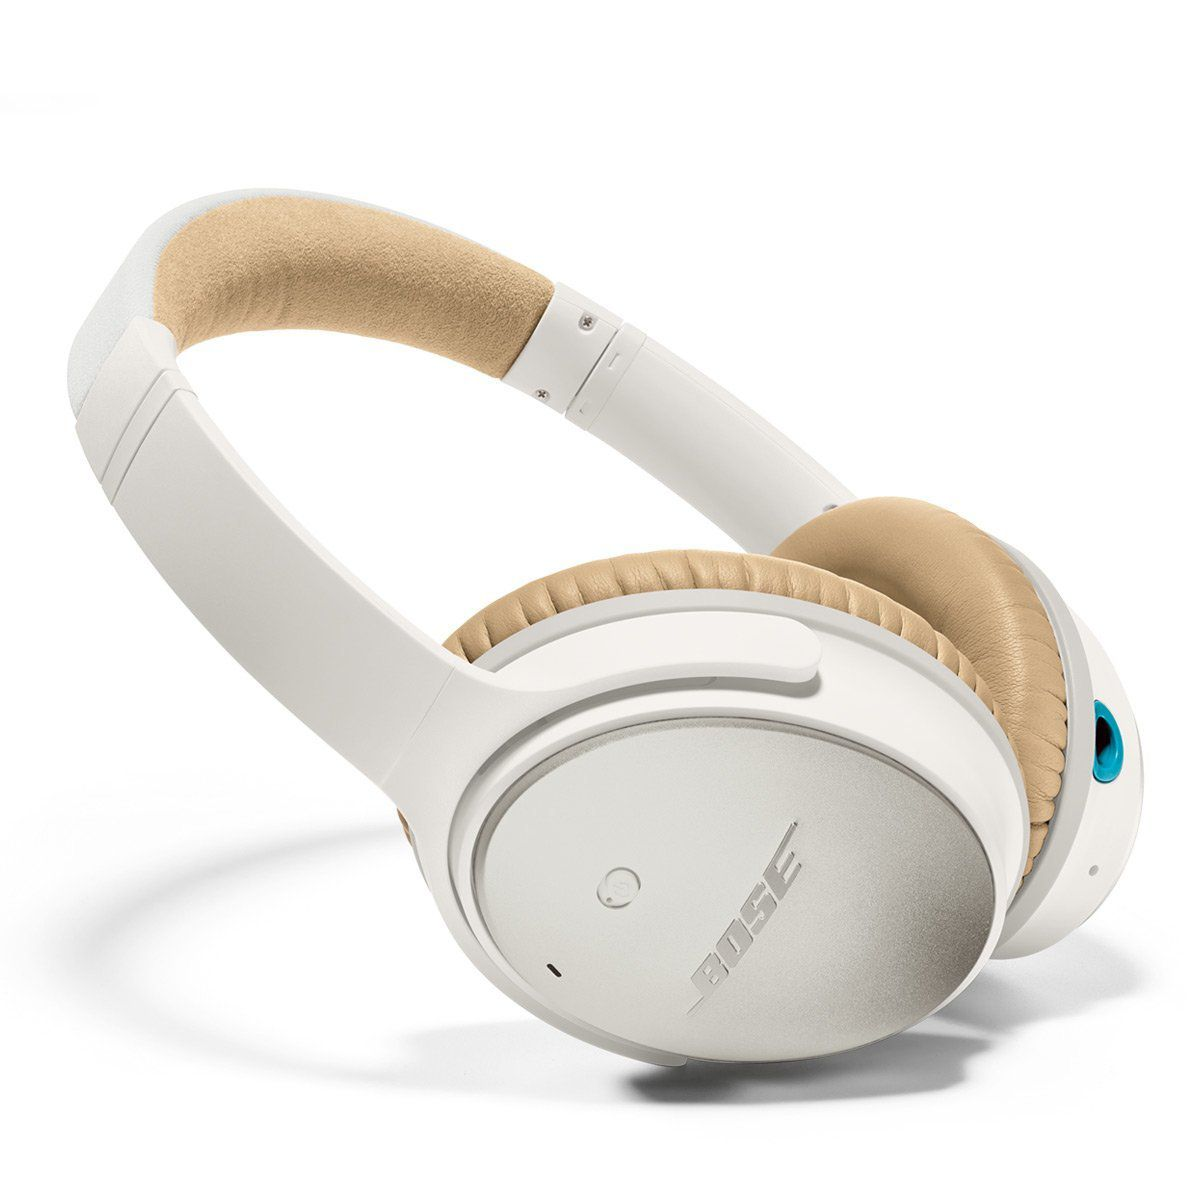 1503d9c2459 Bose QuietComfort 25 Acoustic Noise Cancelling Headphones for Samsung and  Android Devices, White - Buy Bose QuietComfort 25 Acoustic Noise Cancelling  ...